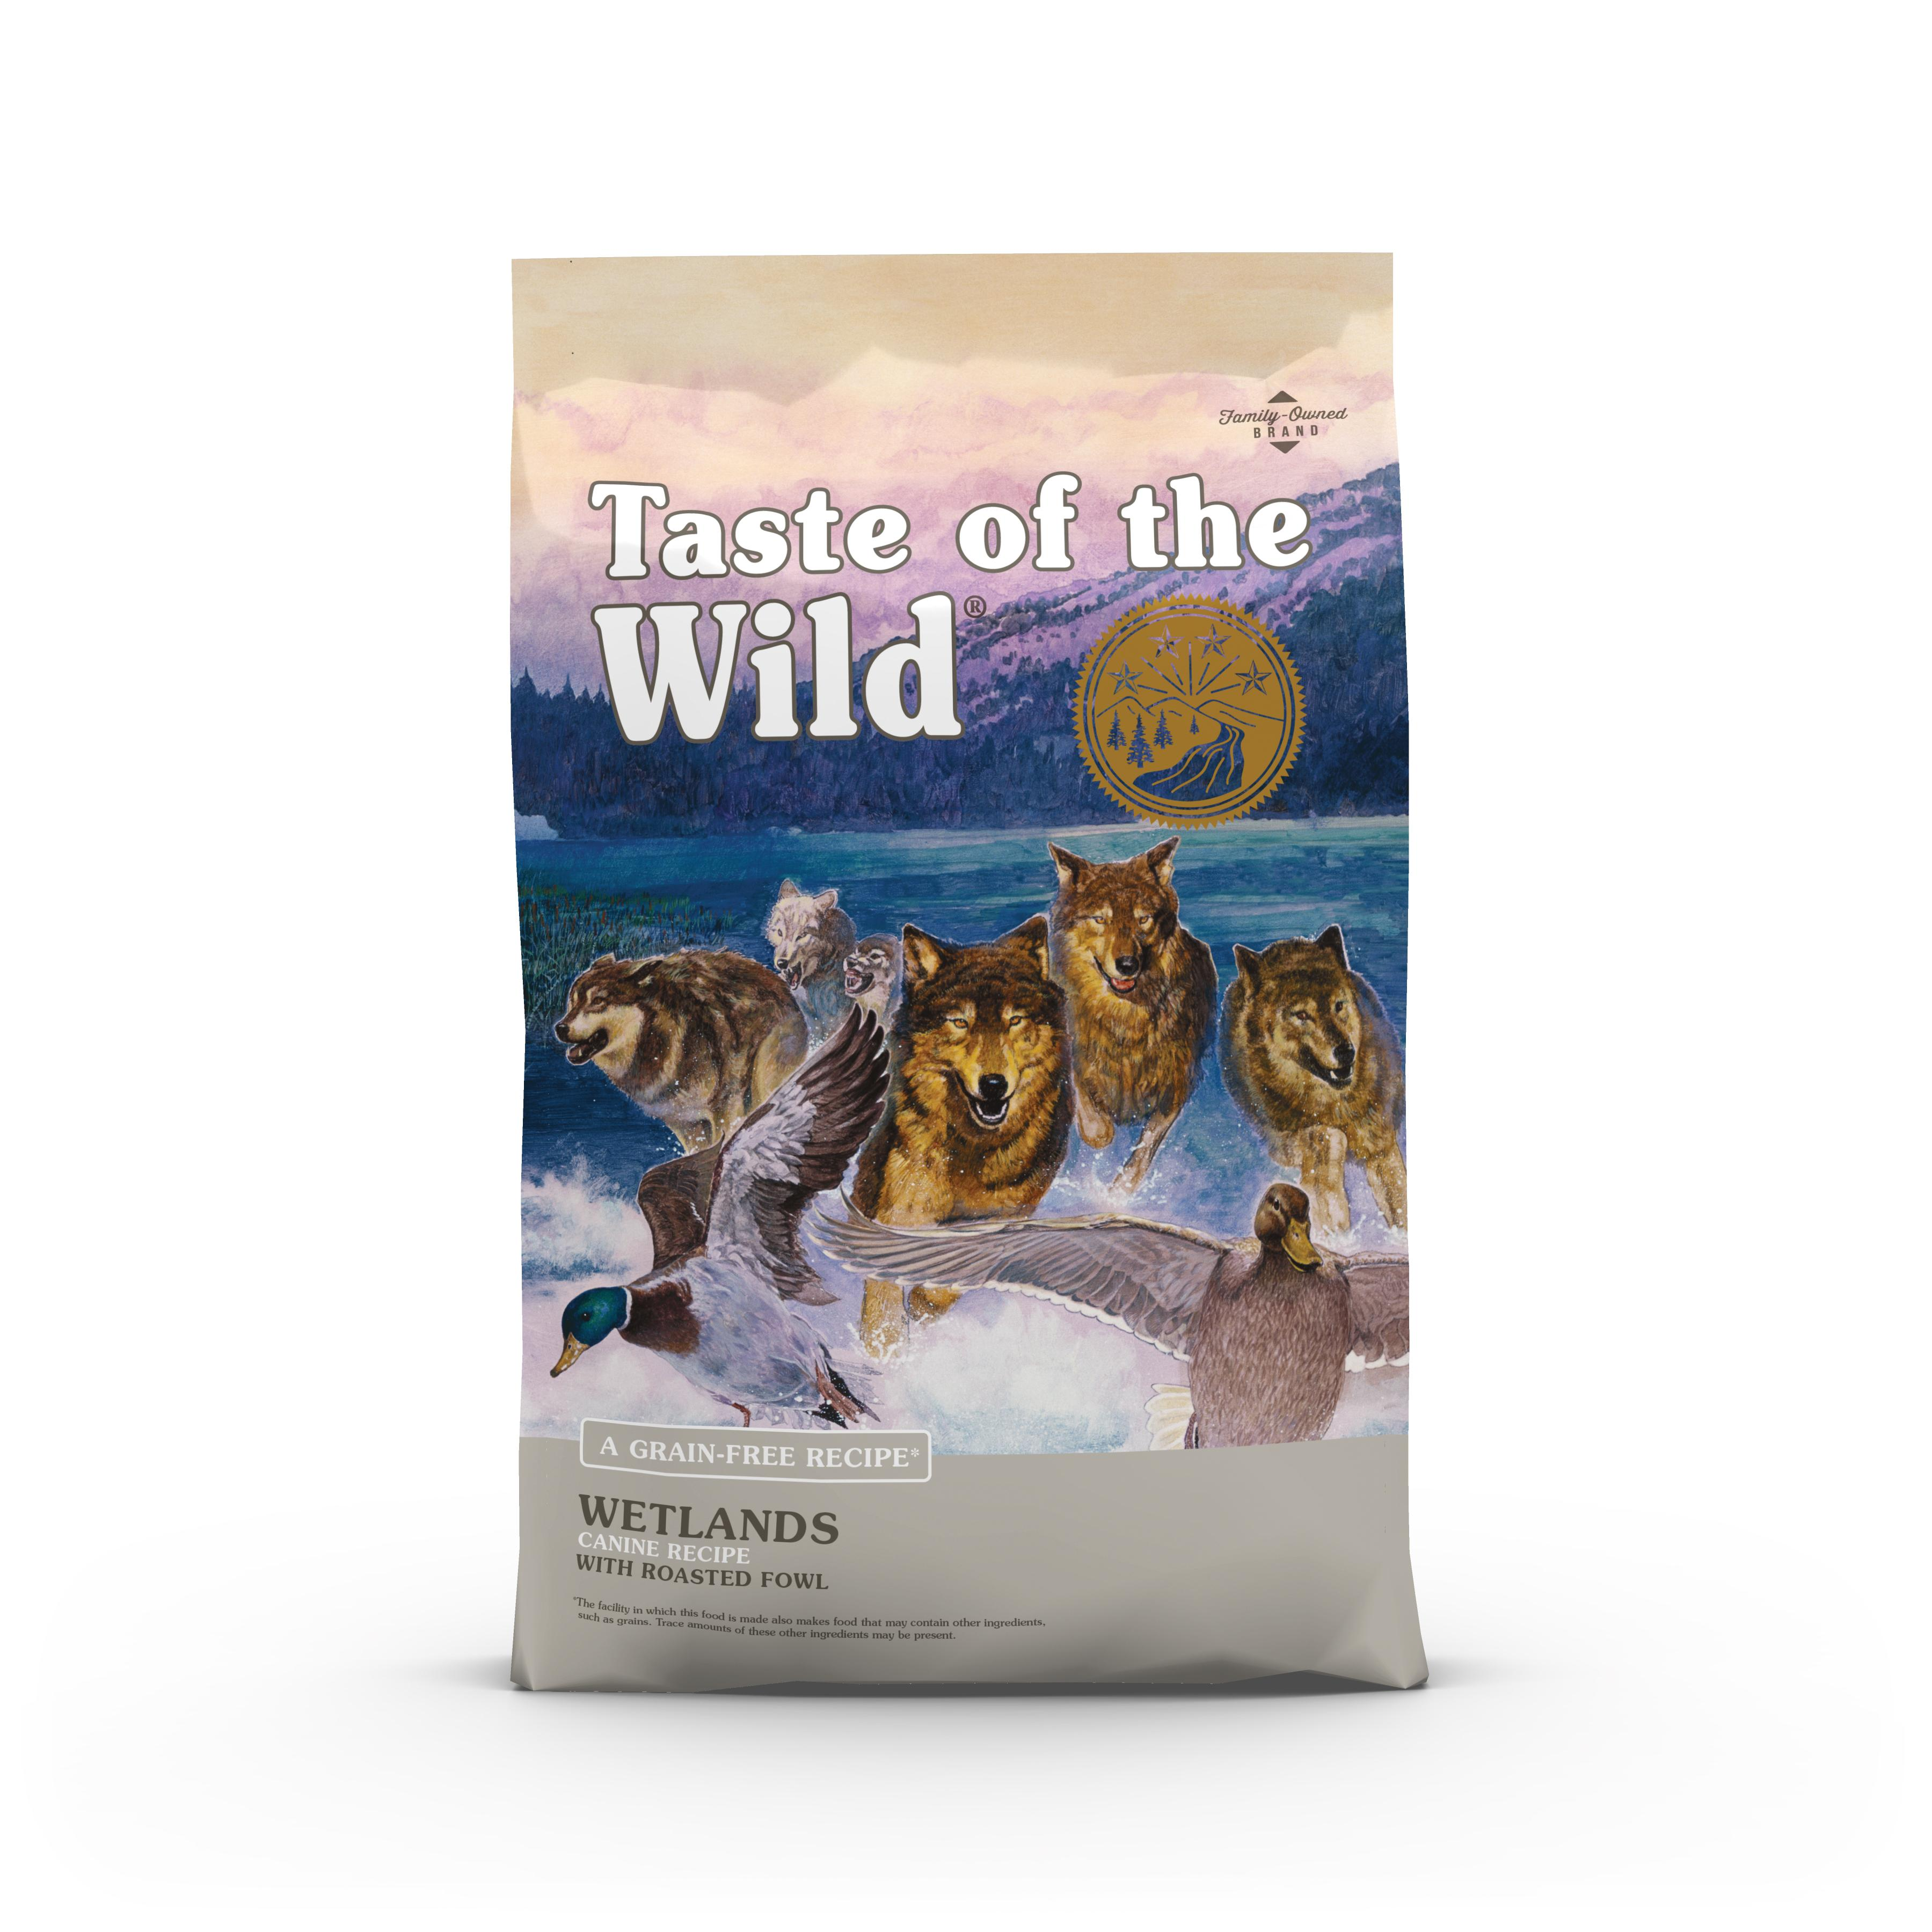 Taste of the Wild Wetlands with Roasted Fowl Grain-Free Adult Dry Dog Food, 5-lb